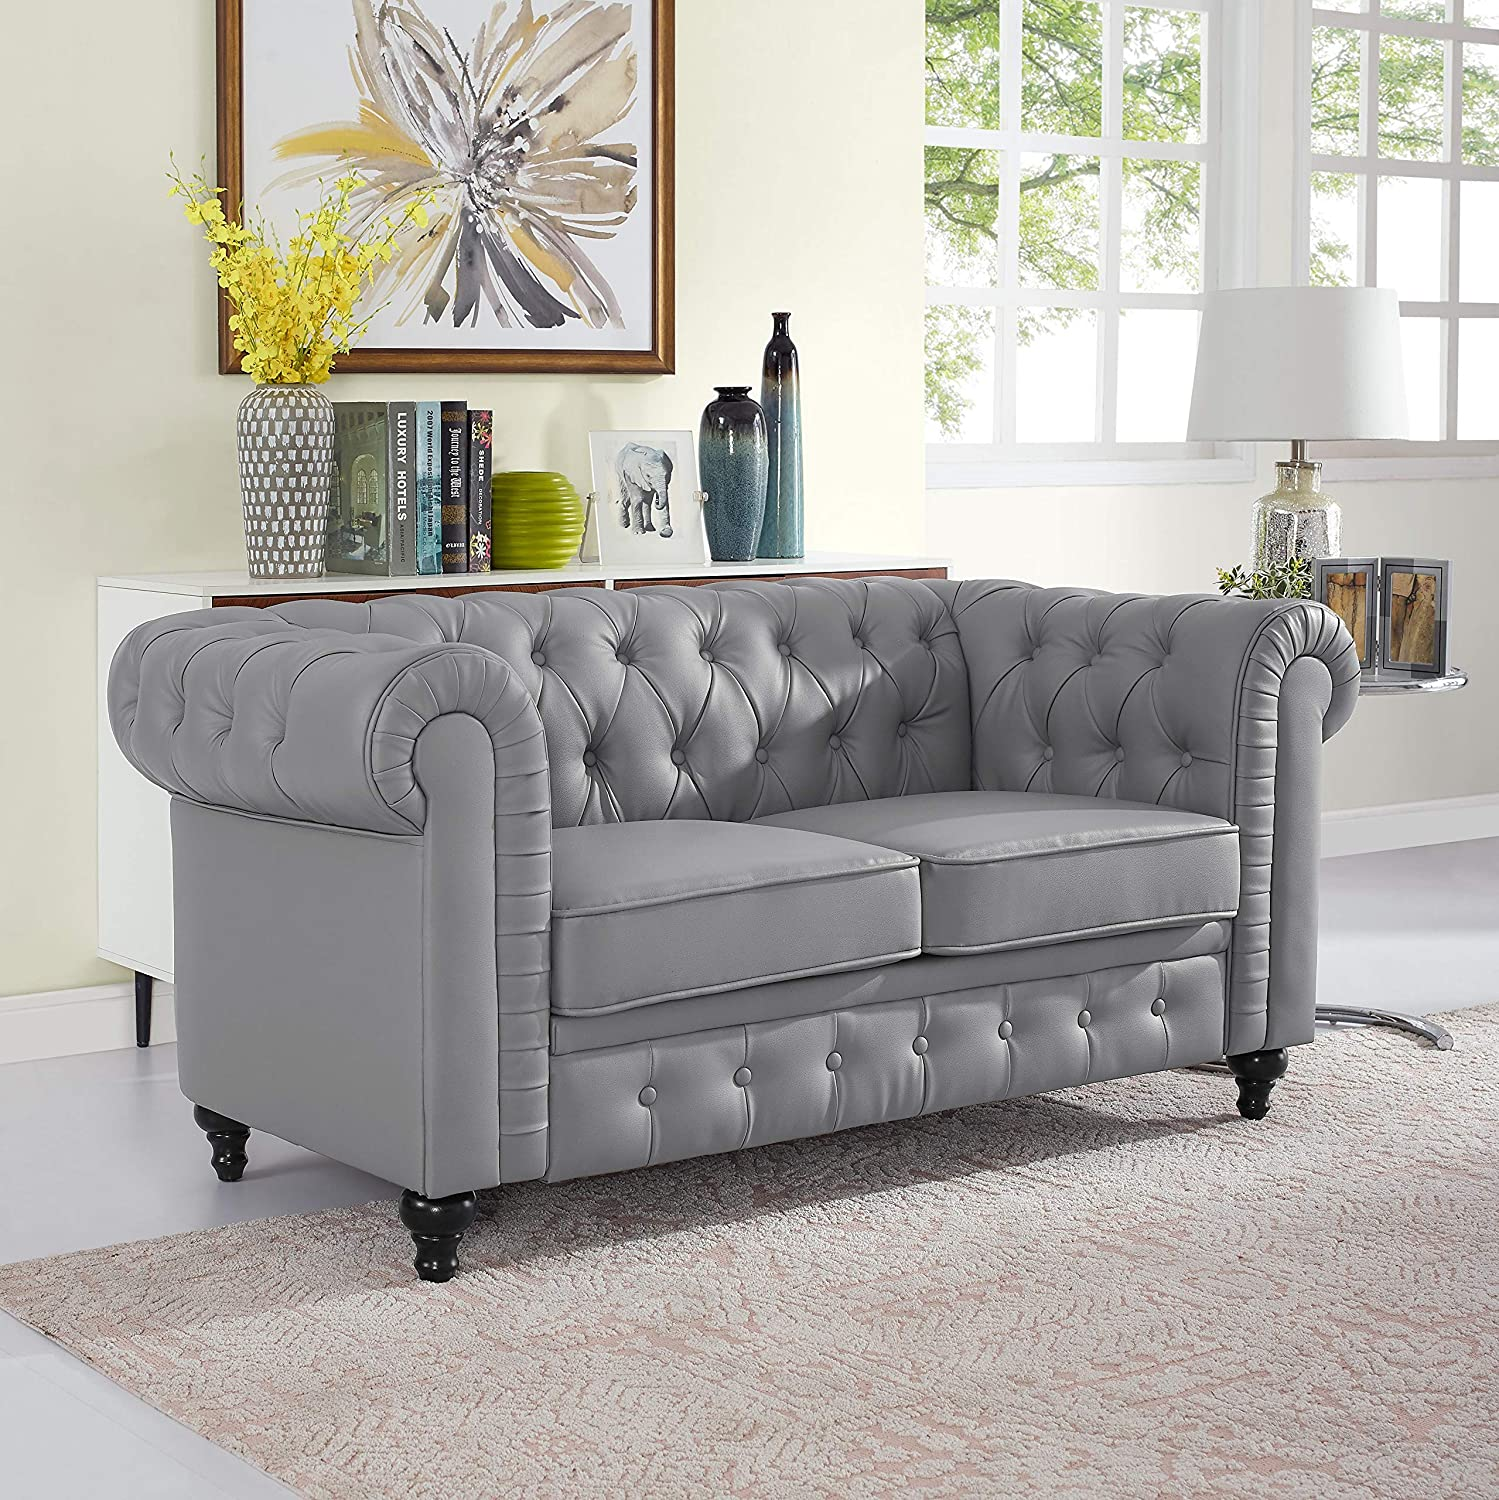 28 10 Best Chesterfield Sofa Reviews of 10 You Should Know